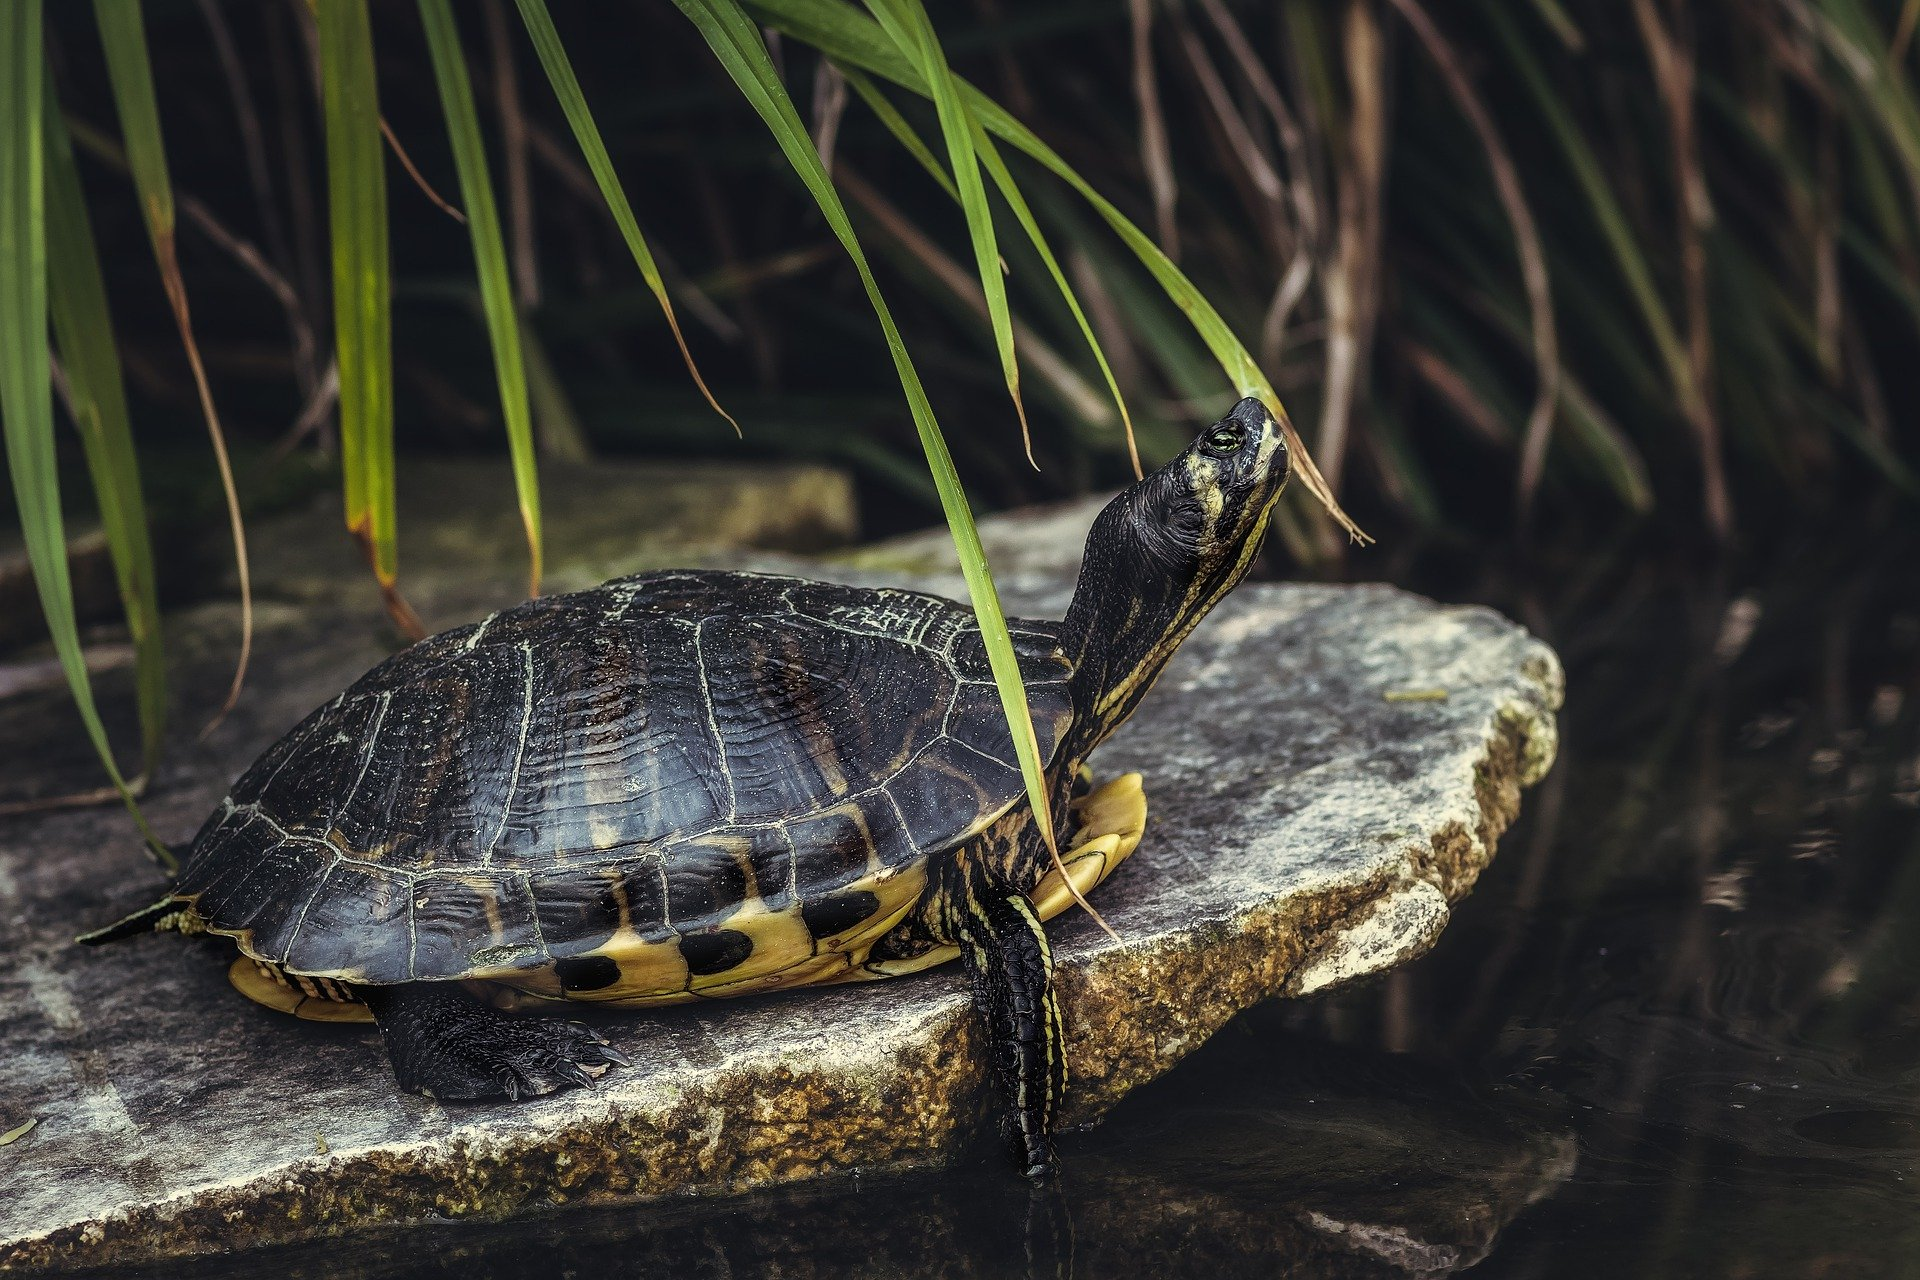 Can Tortoises and Turtles Live Without Their Shell?